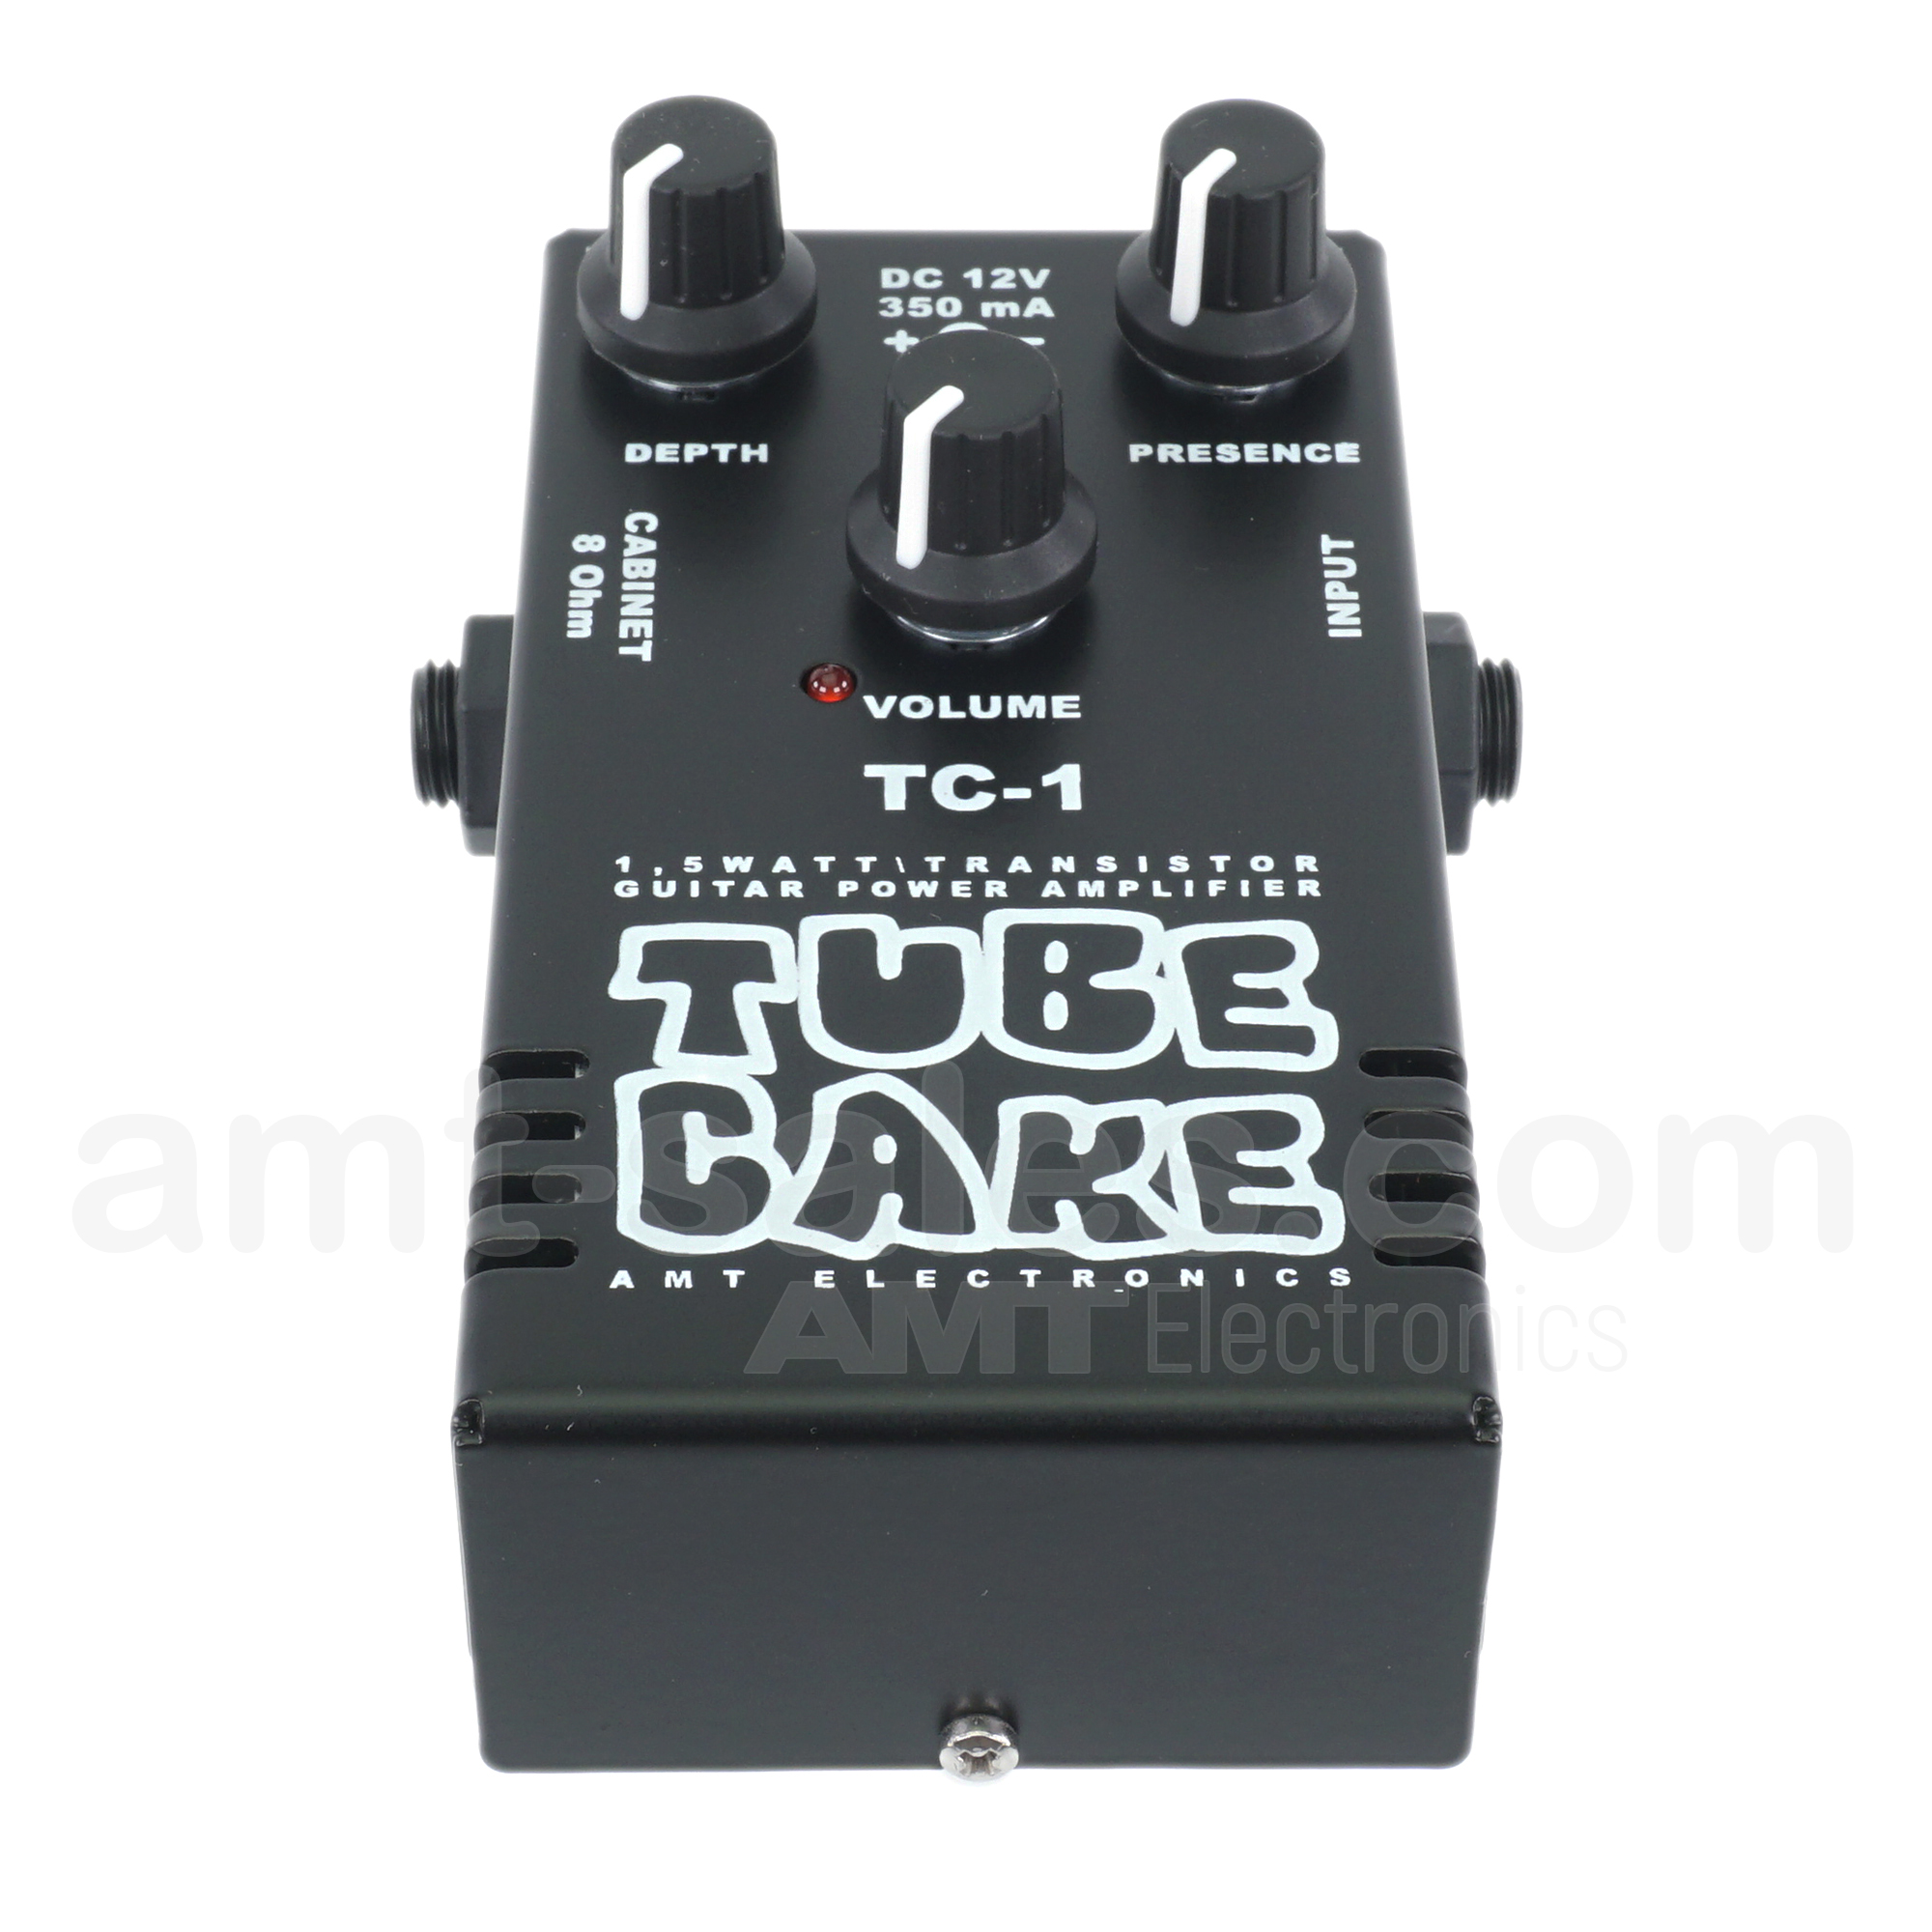 AMT Tubecake 1,5W - 1.5W Power Amplifier (100% analog)